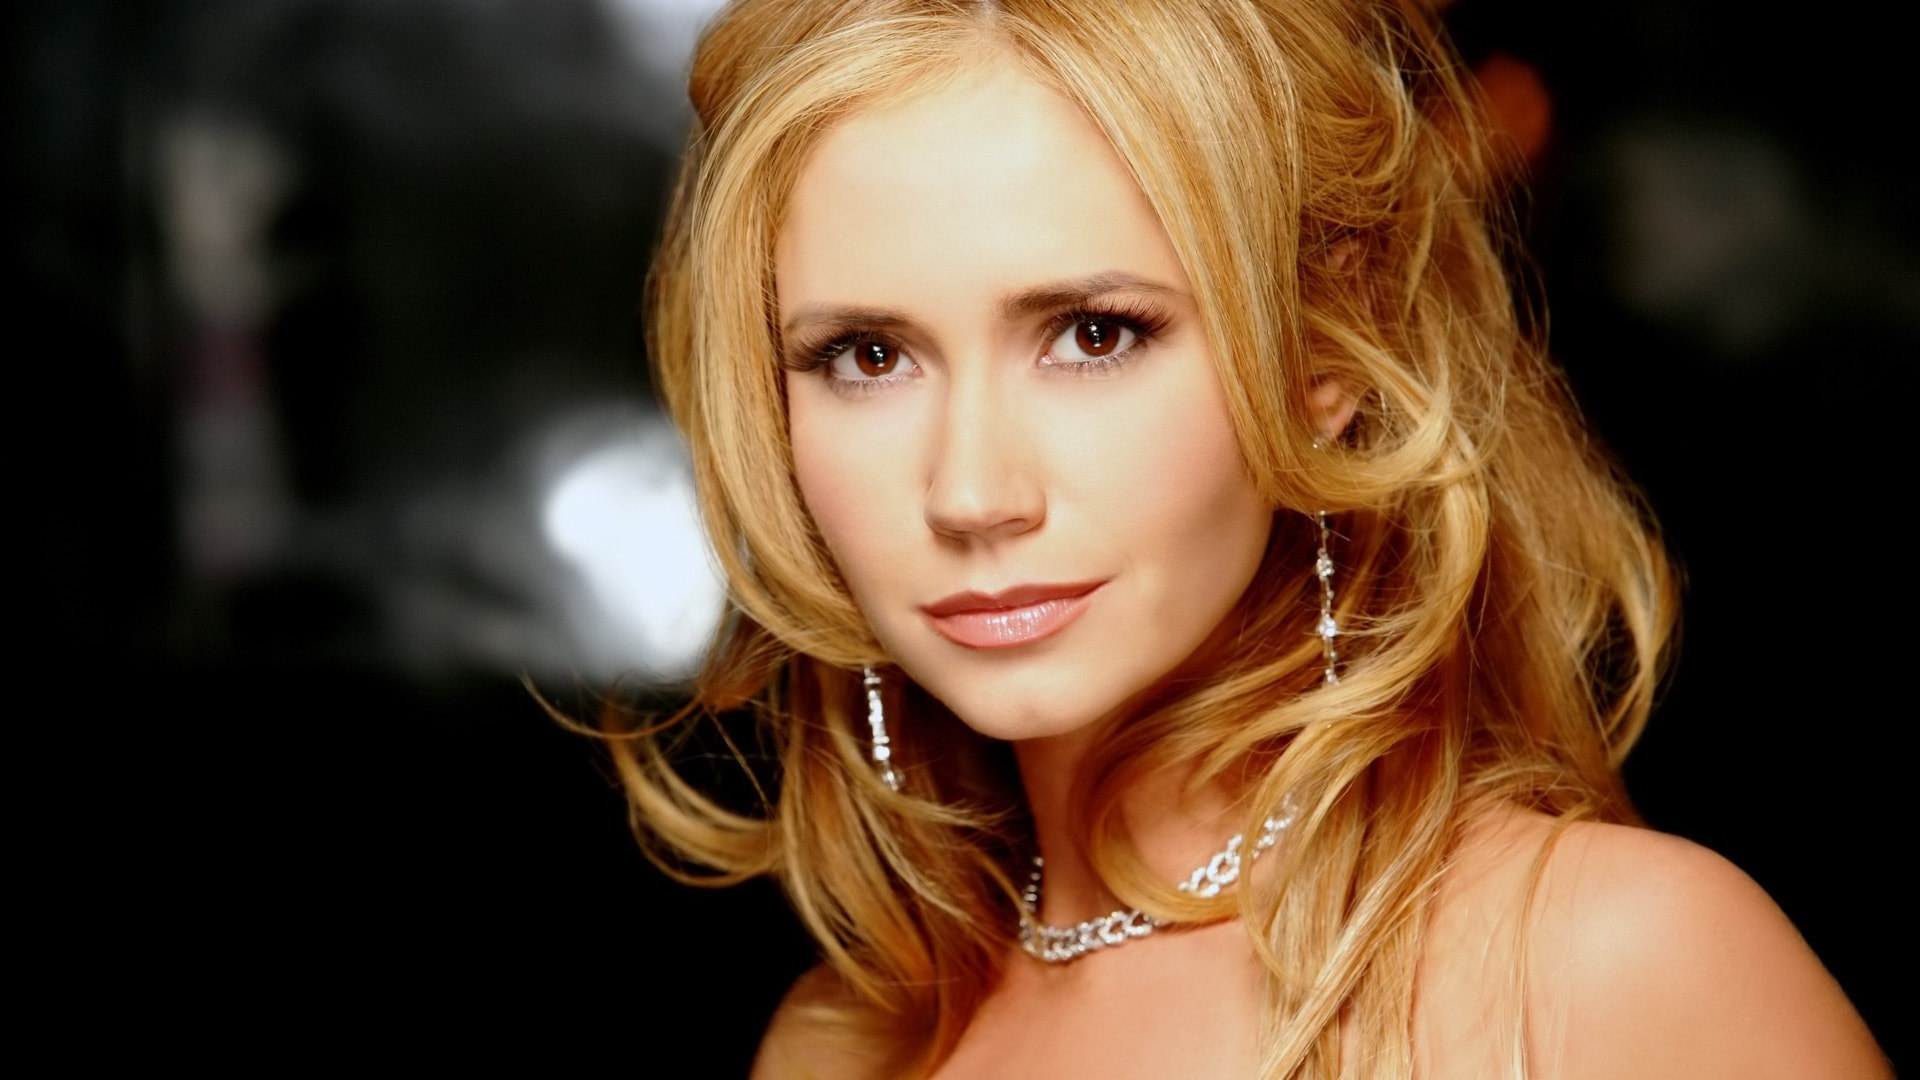 Ashley Jones Wallpapers hd